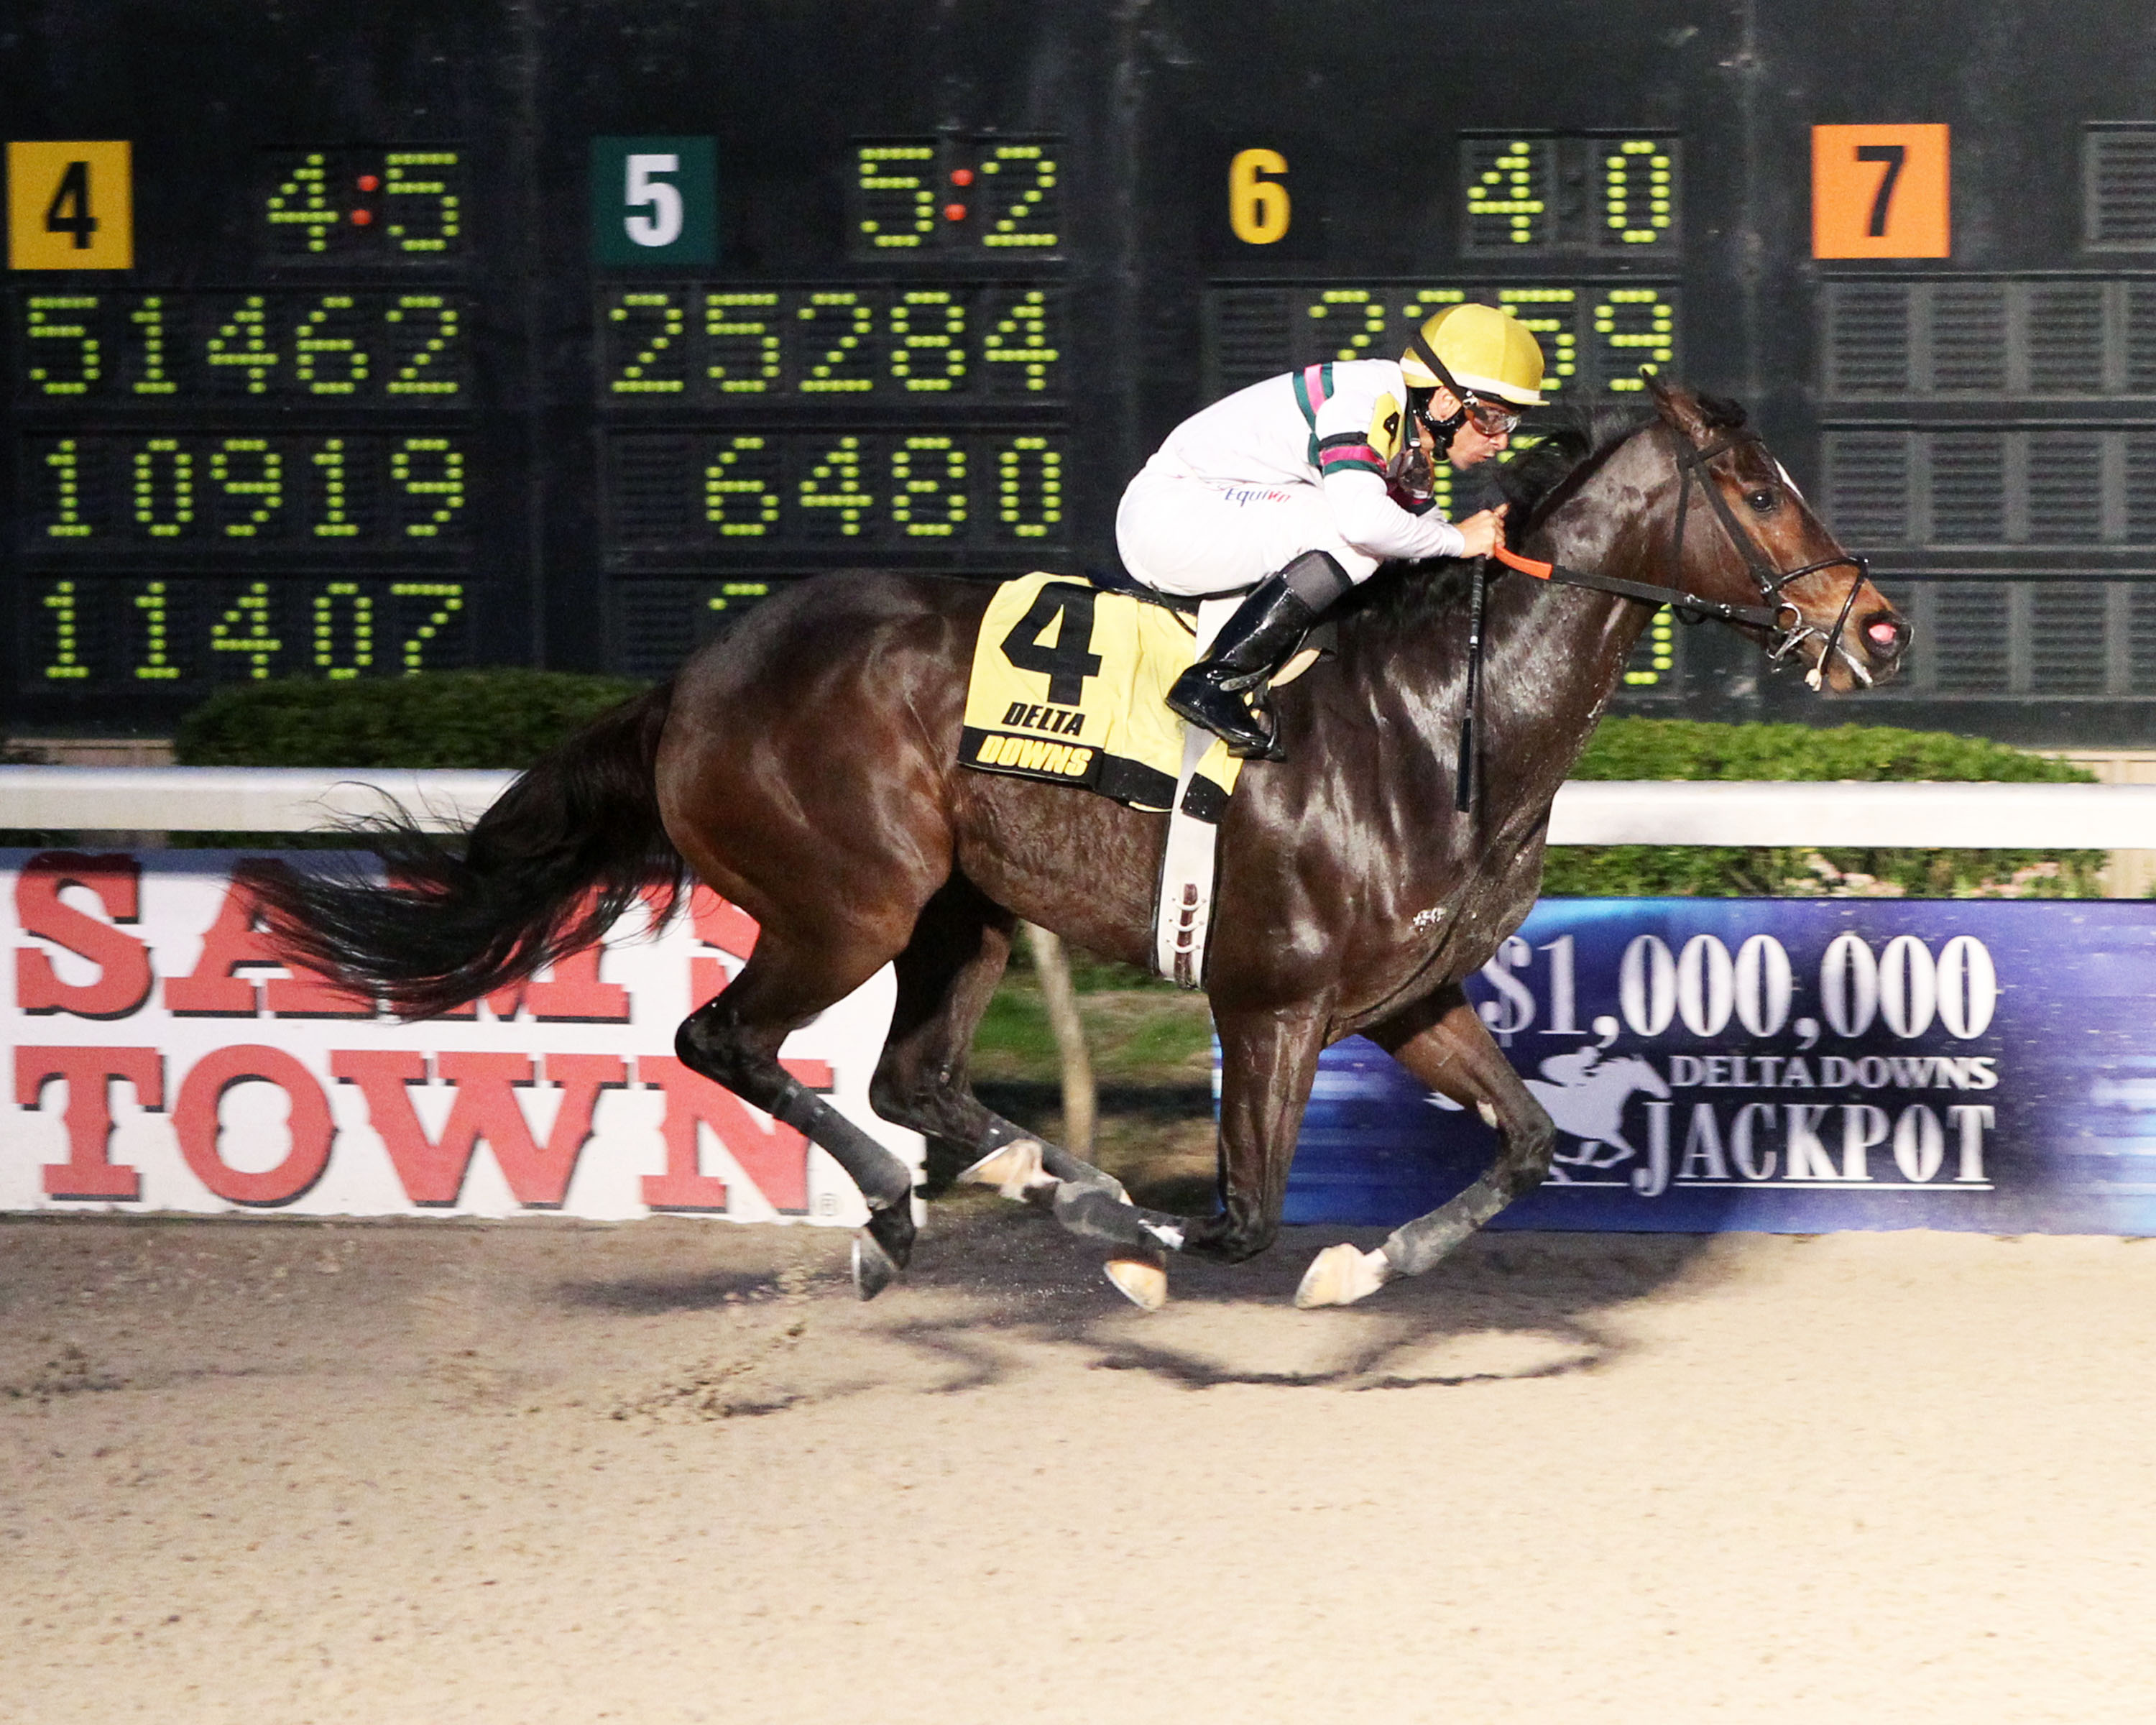 SUNBEAN - The 12th running of the Delta Mile - 11-22-14 - R08 - DED - Finish